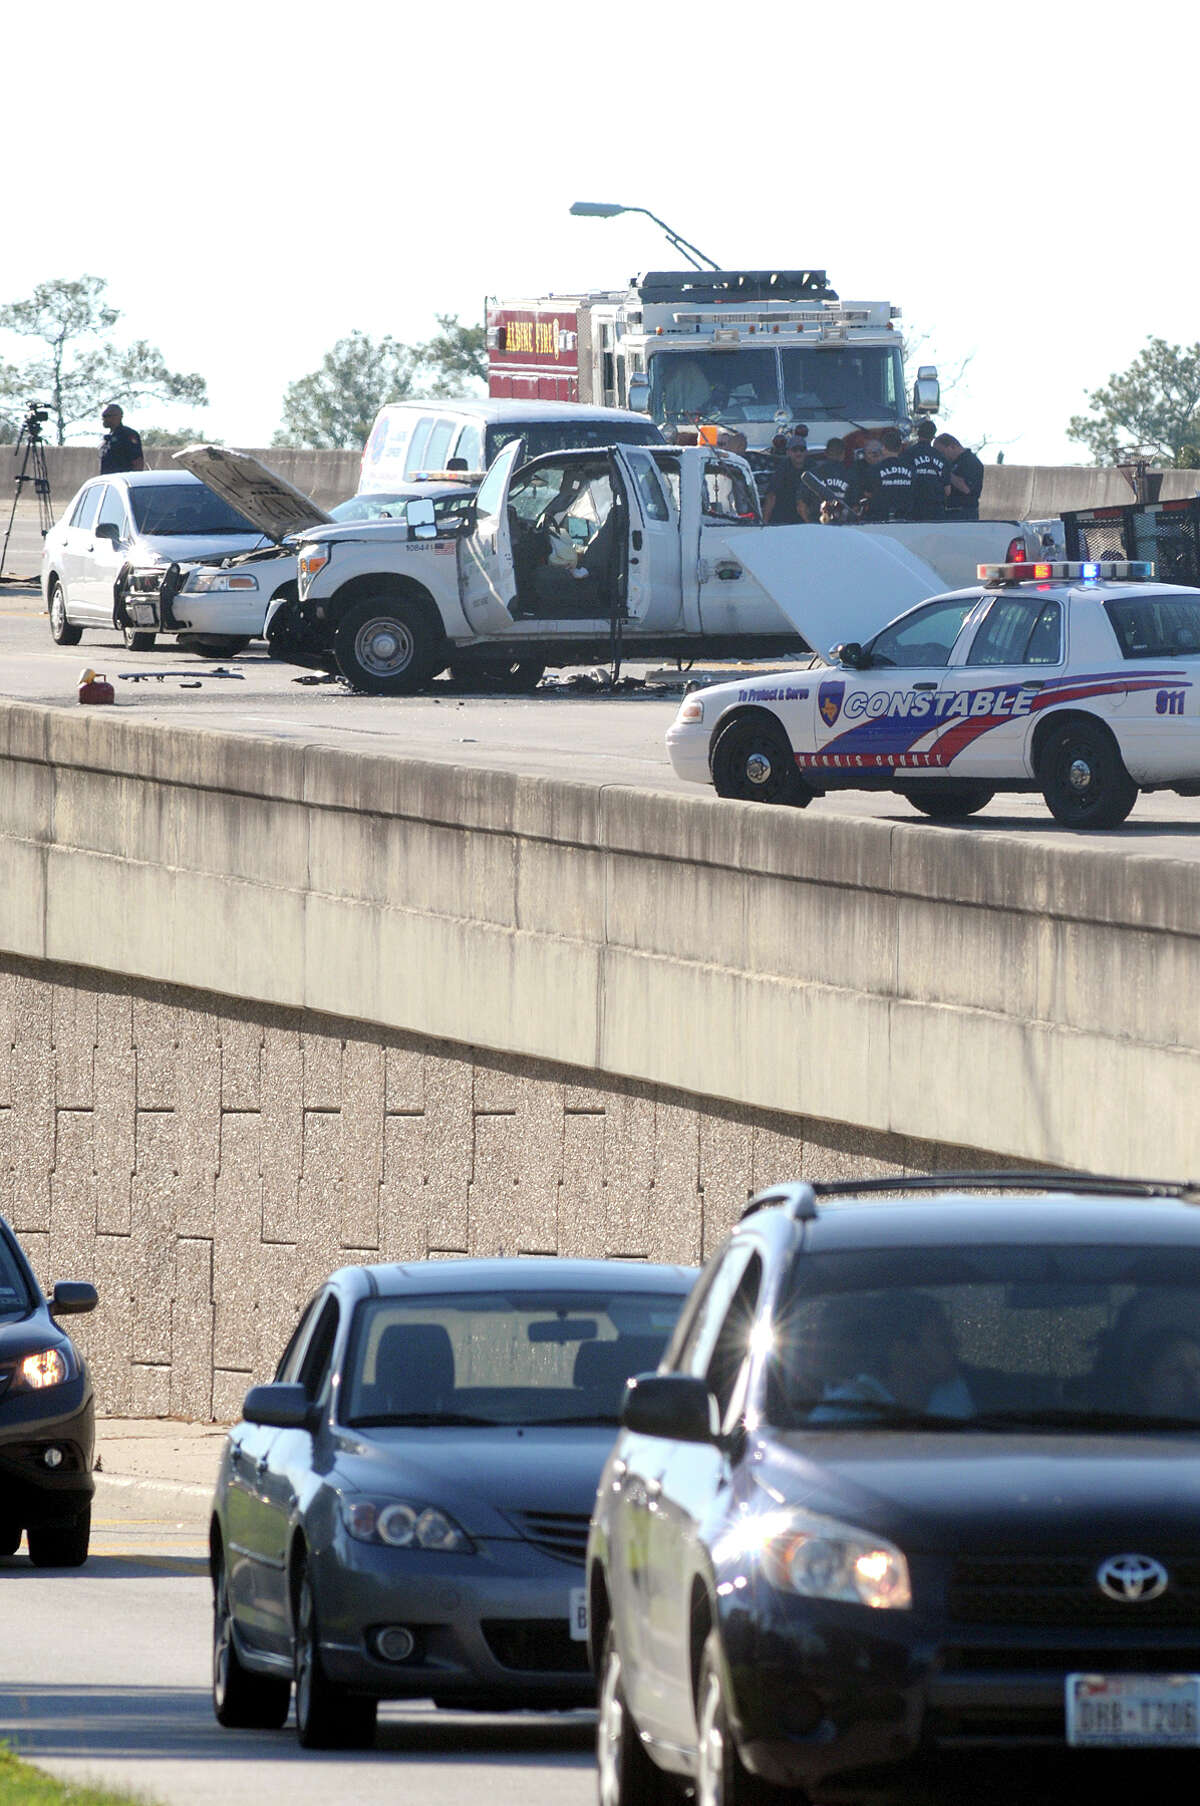 A head-on collision on the Hardy Toll Road at FM 1960 on Tuesday afternoon resulted in one fatality and injuries to 5 others.